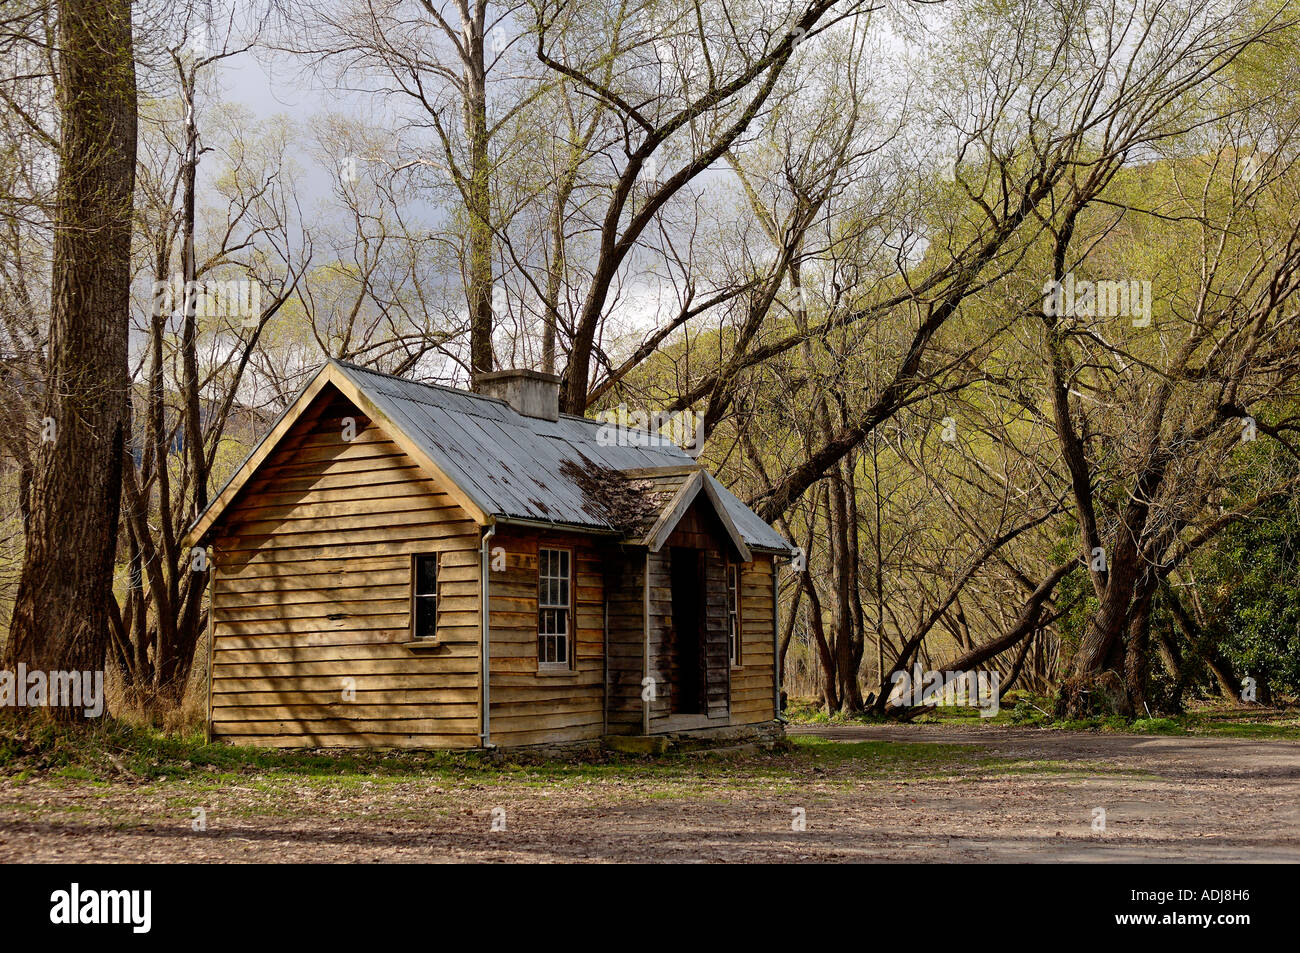 A old timber hut in amongst tall sprawling woodland. - Stock Image